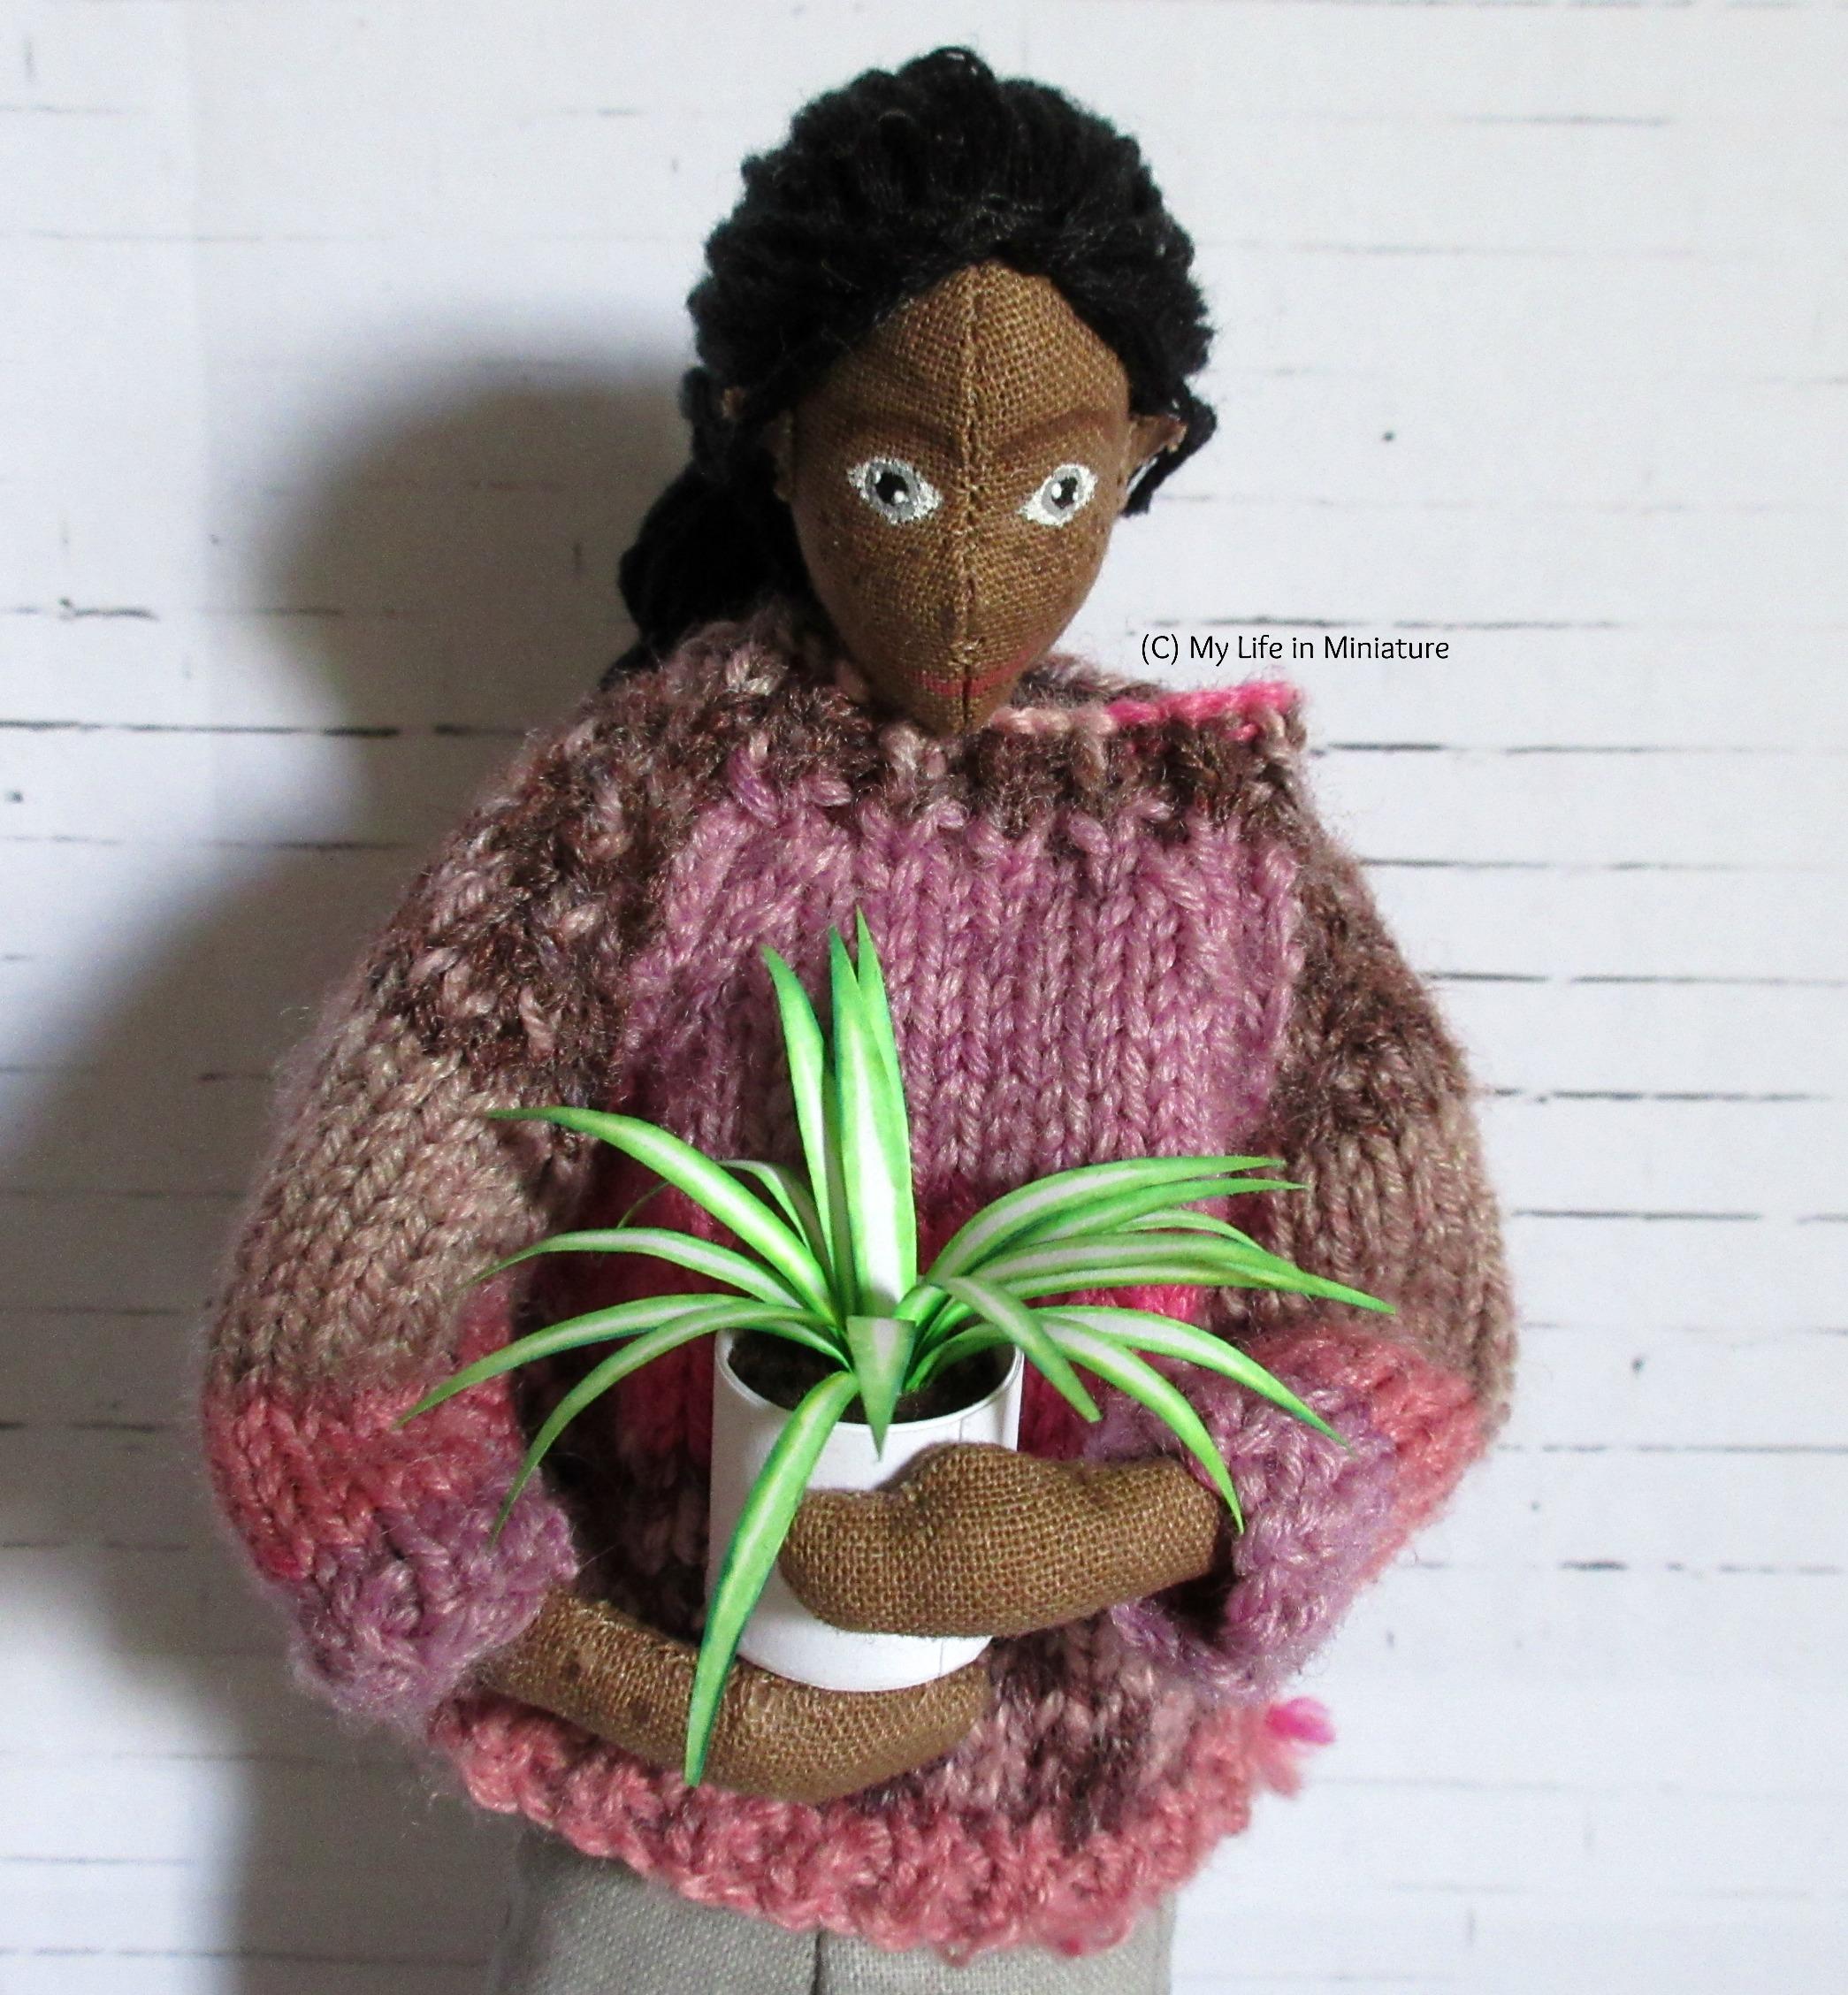 Petra holds a spiderplant in her arms, looking down at it. She's against a white brick background.